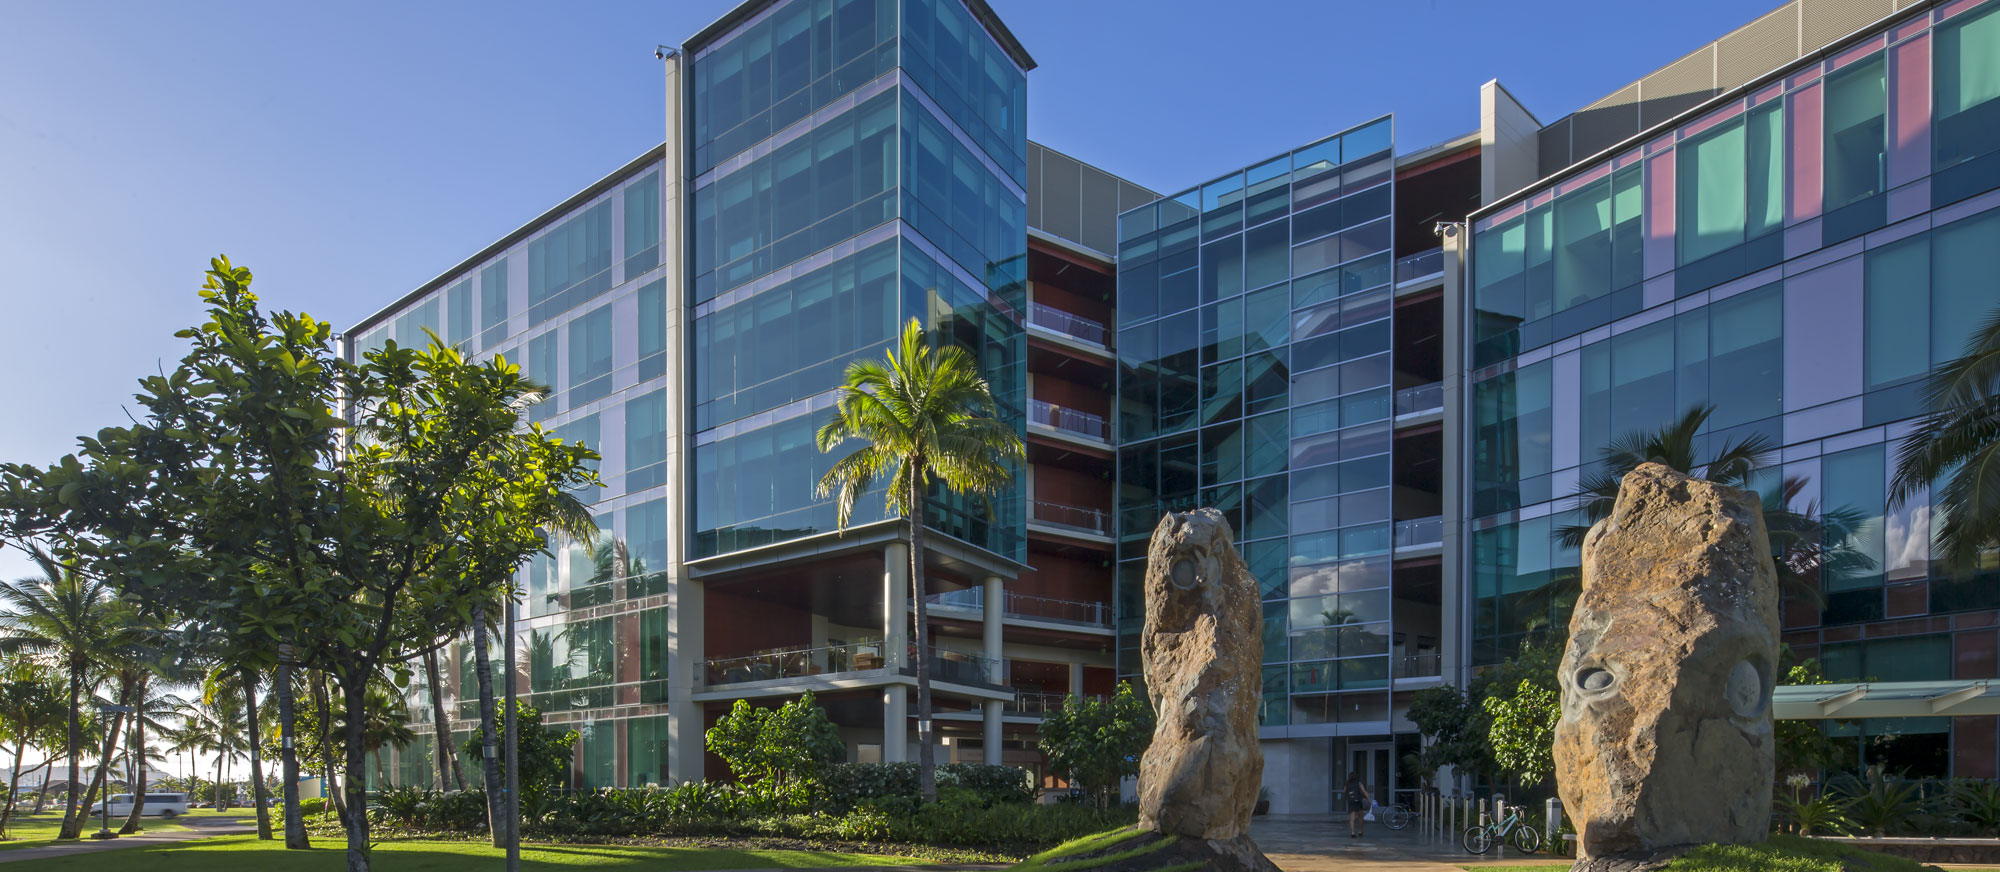 The University of Hawaii Cancer Center campus in Kakaako